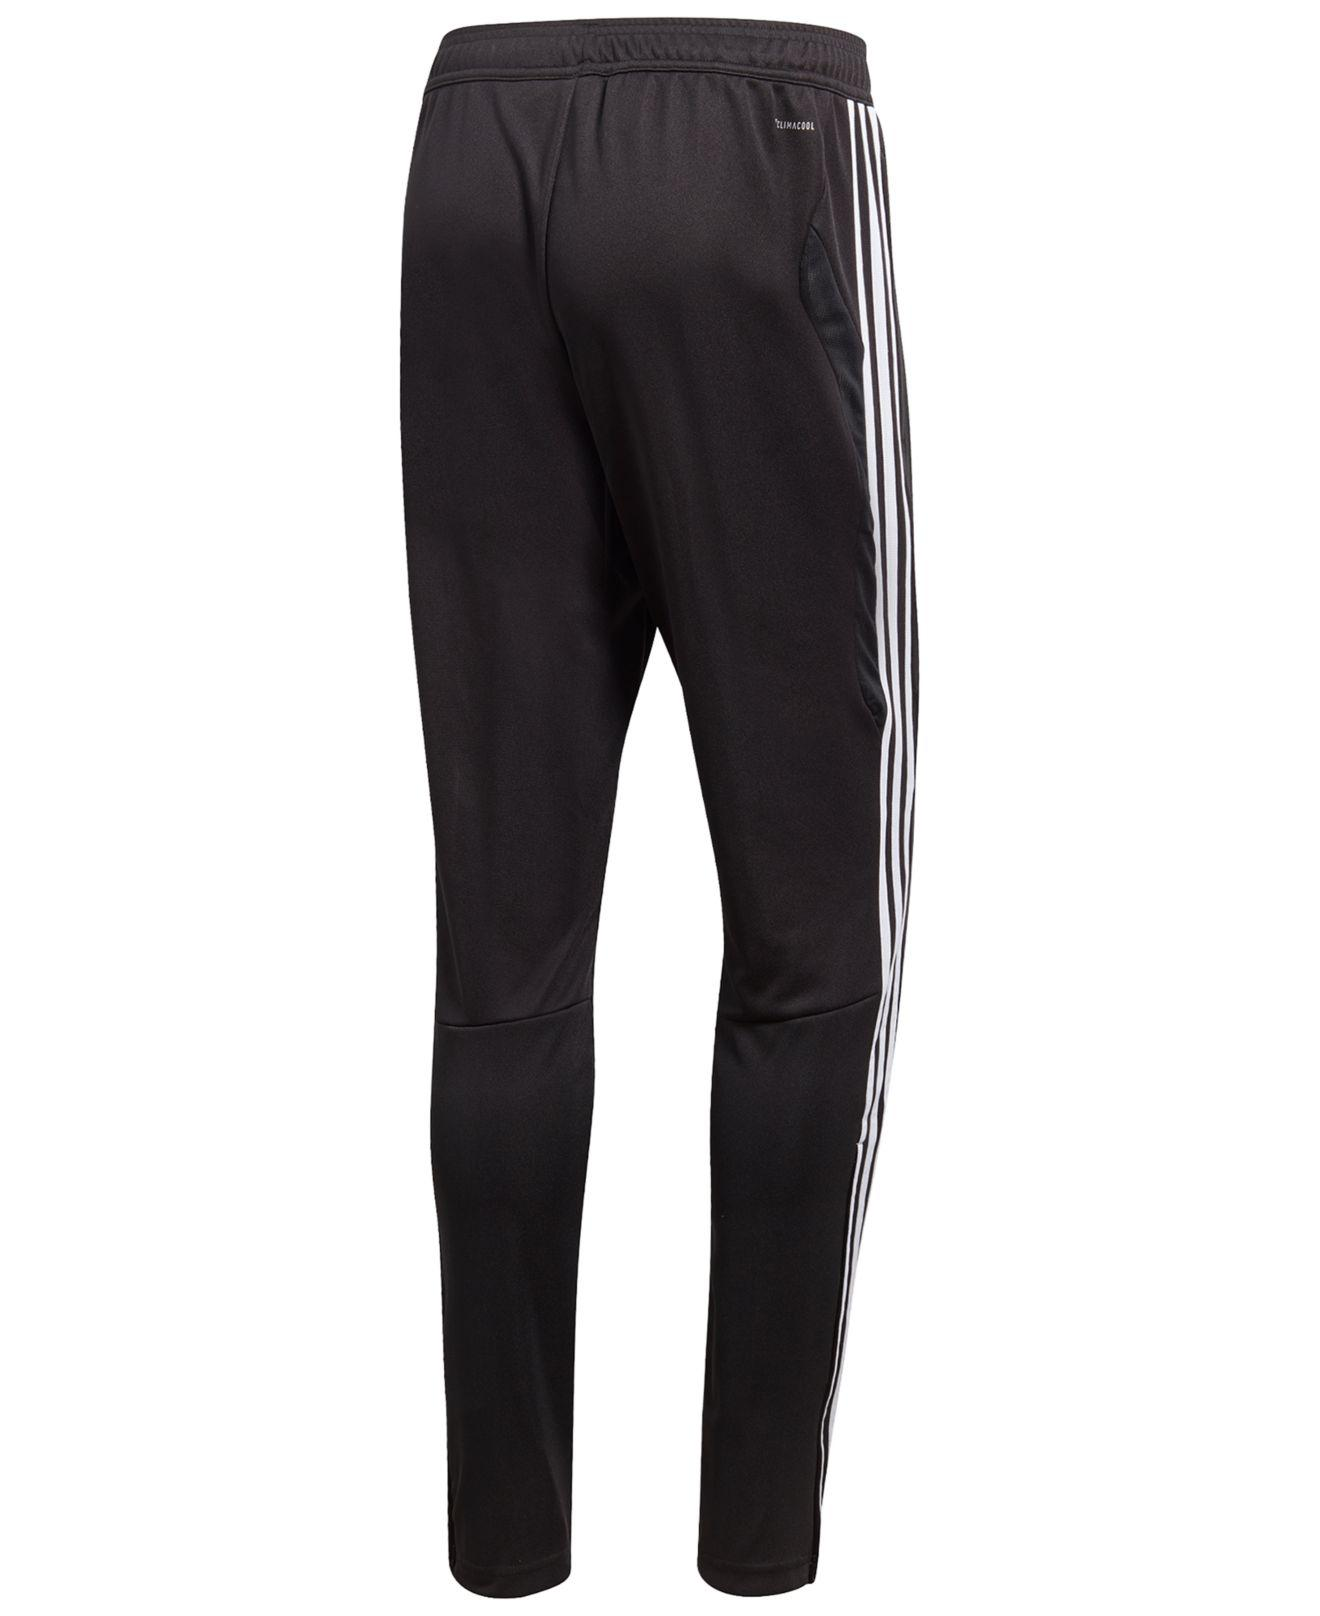 c3ceae50b Lyst - adidas Tiro 19 Climacool® Soccer Pants in Black for Men